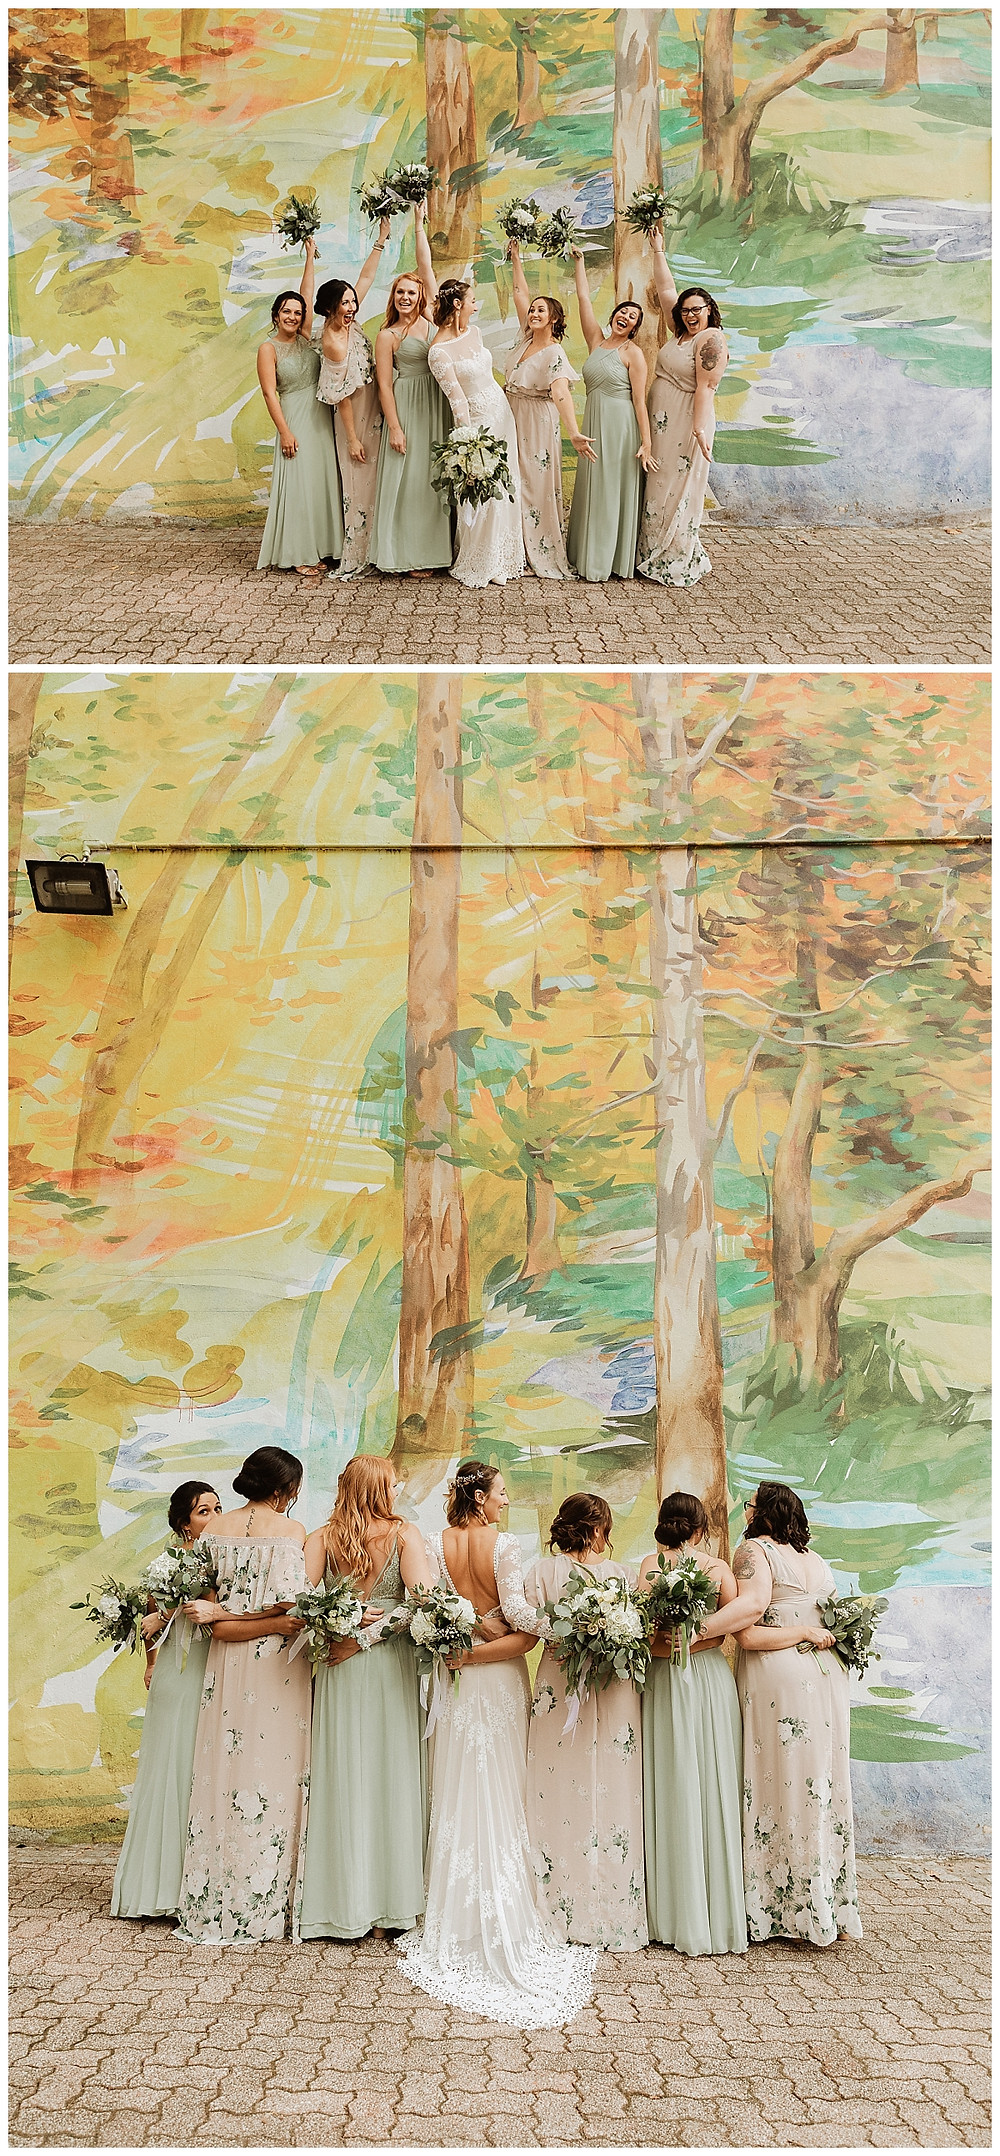 Bridal Party Portraits in front of Painted Mural